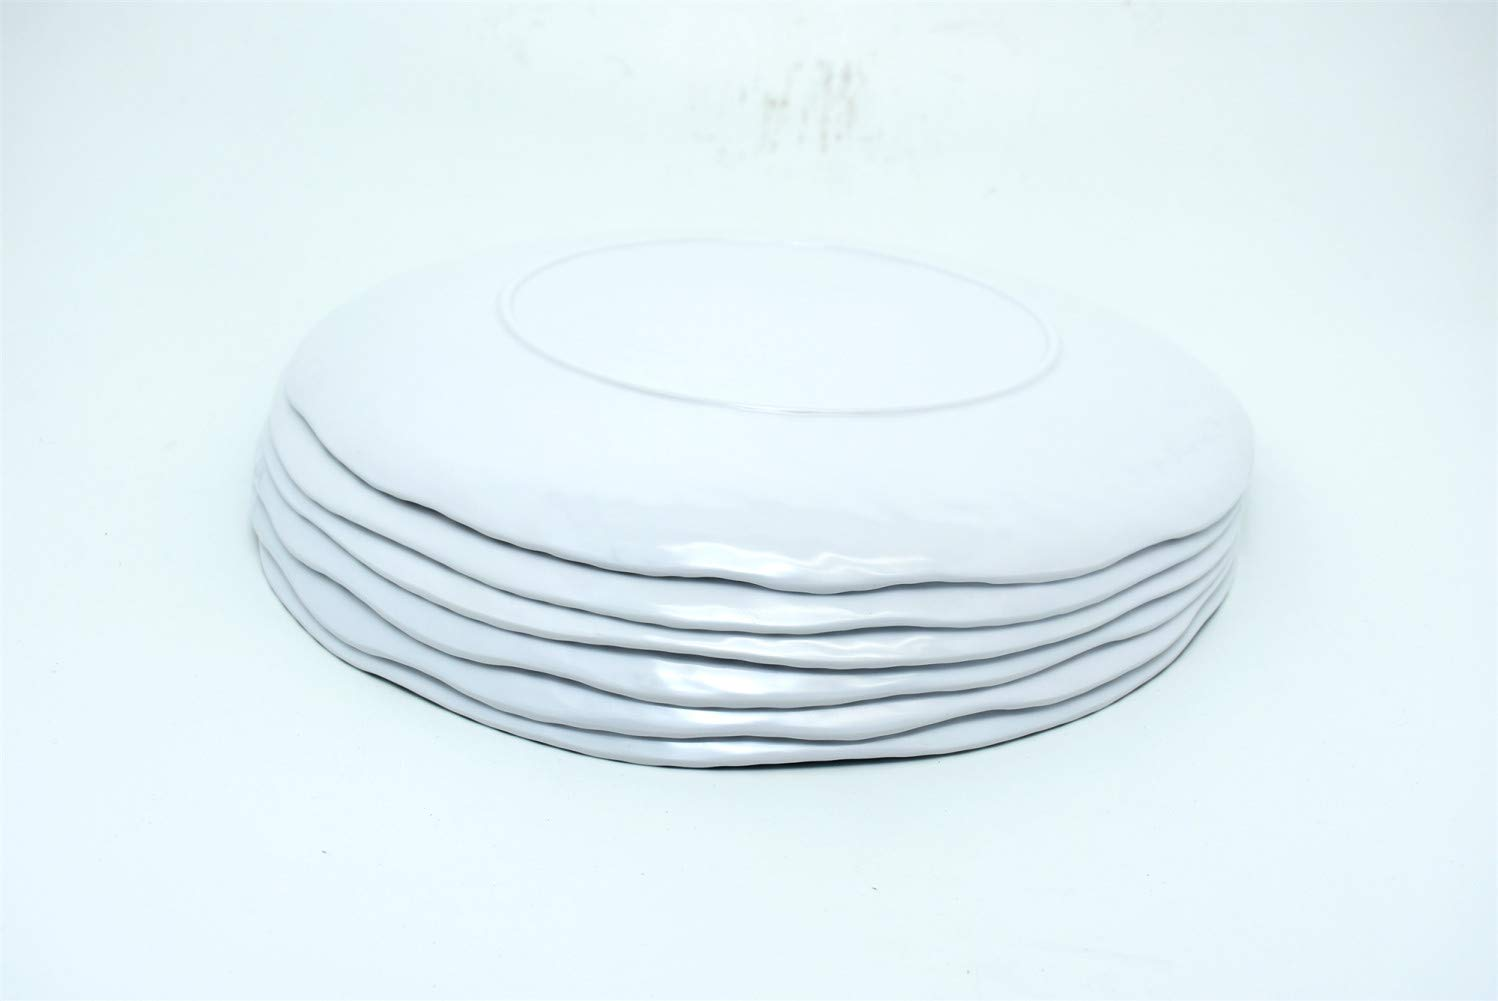 6 White Nautical Rope Melamine Dinner Plate 11 Inches 6 Pack